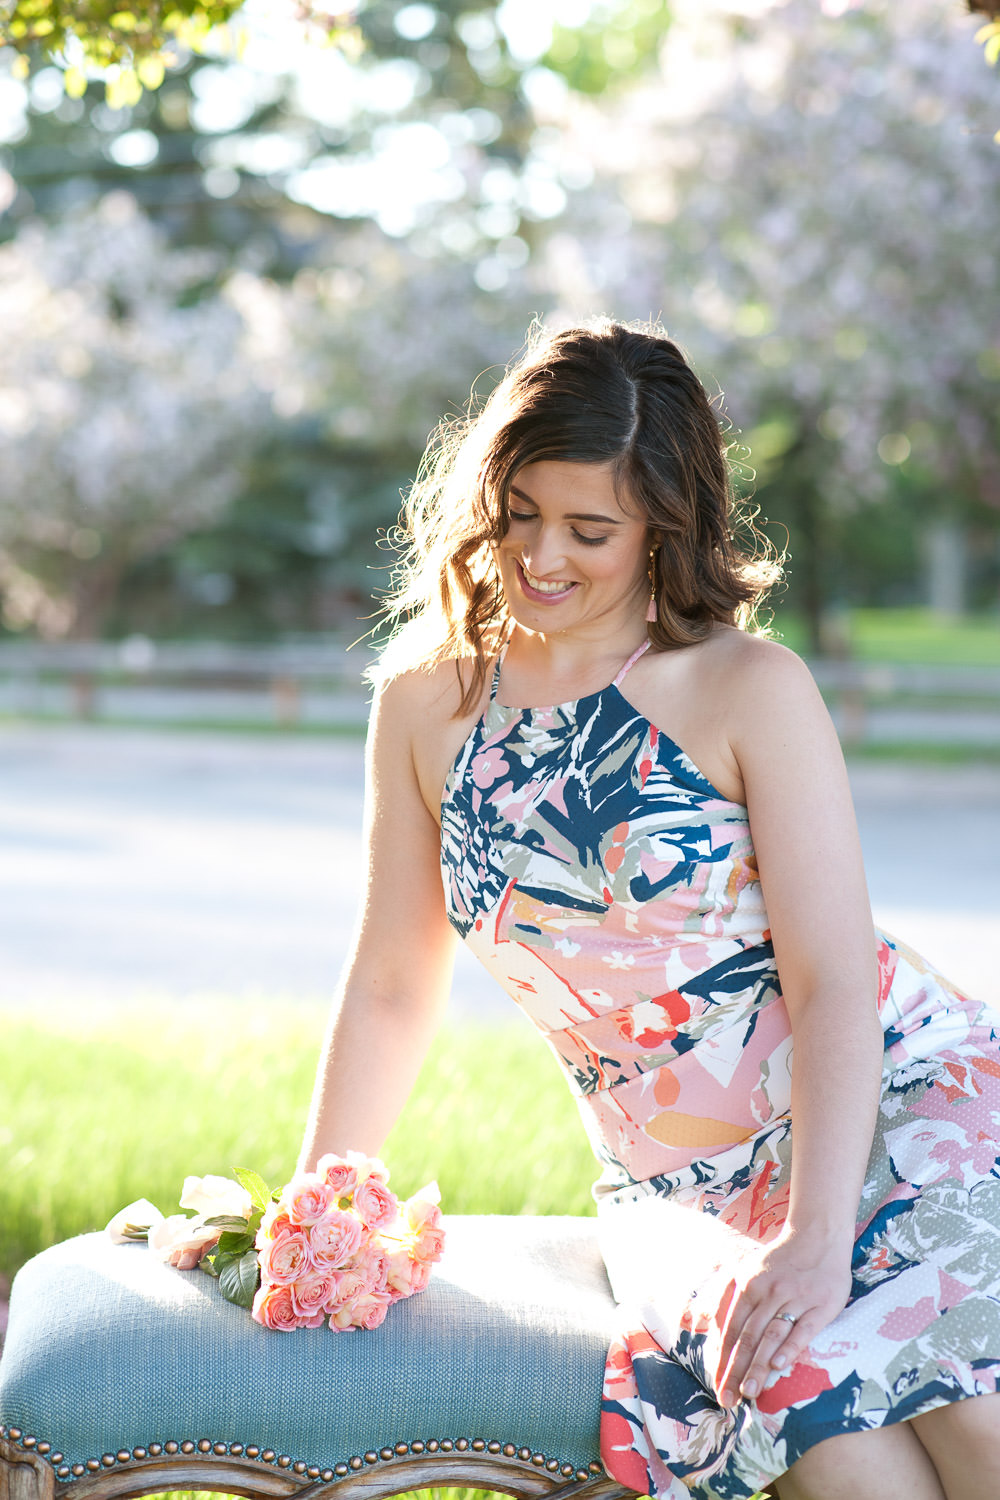 Janelle from Flowers by Janie captured by Calgary Lifestyle Photographer Tara Whittaker